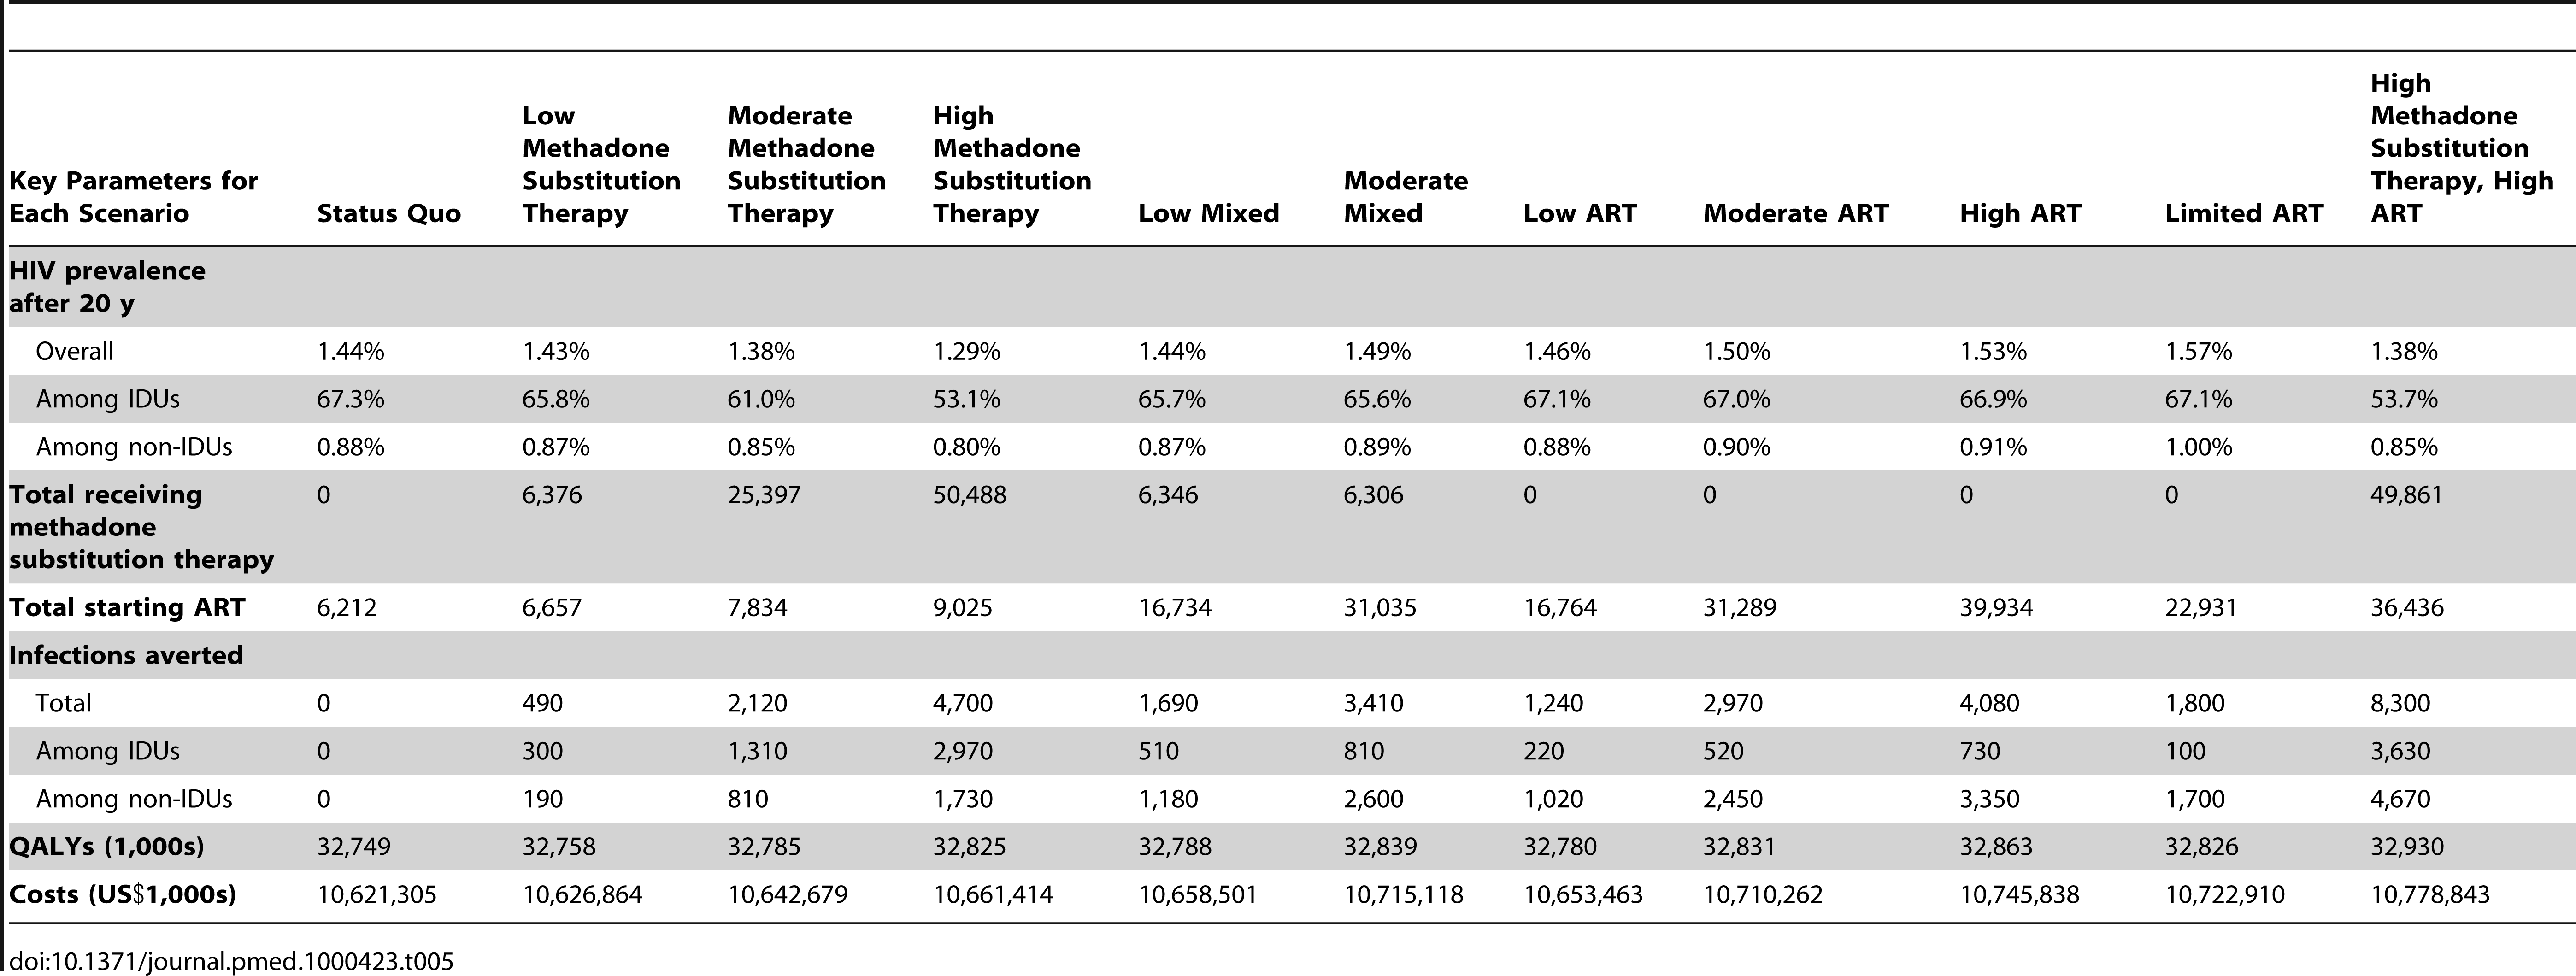 Base case results for methadone substitution therapy and ART scale-up scenarios.